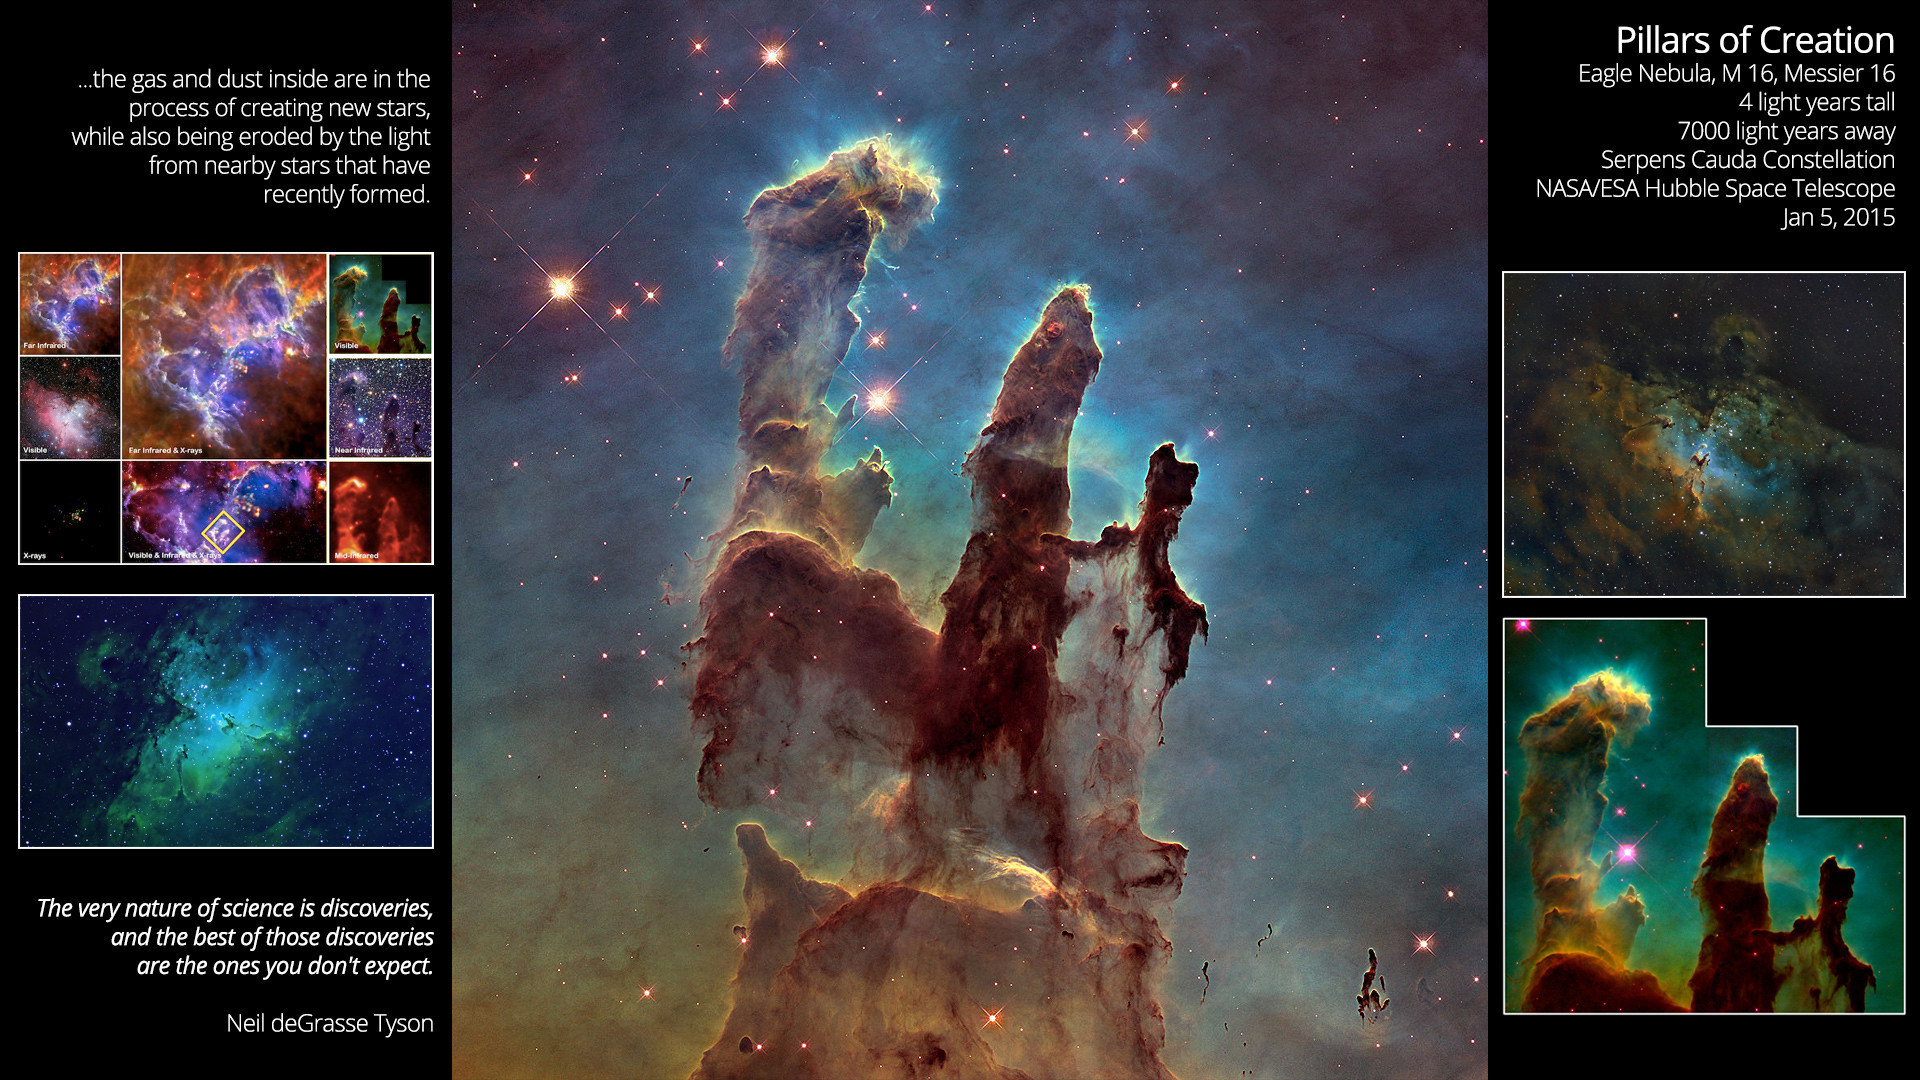 Earth 3d Wallpaper Android Hubble Pillars Of Creation Wallpaper 58 Images